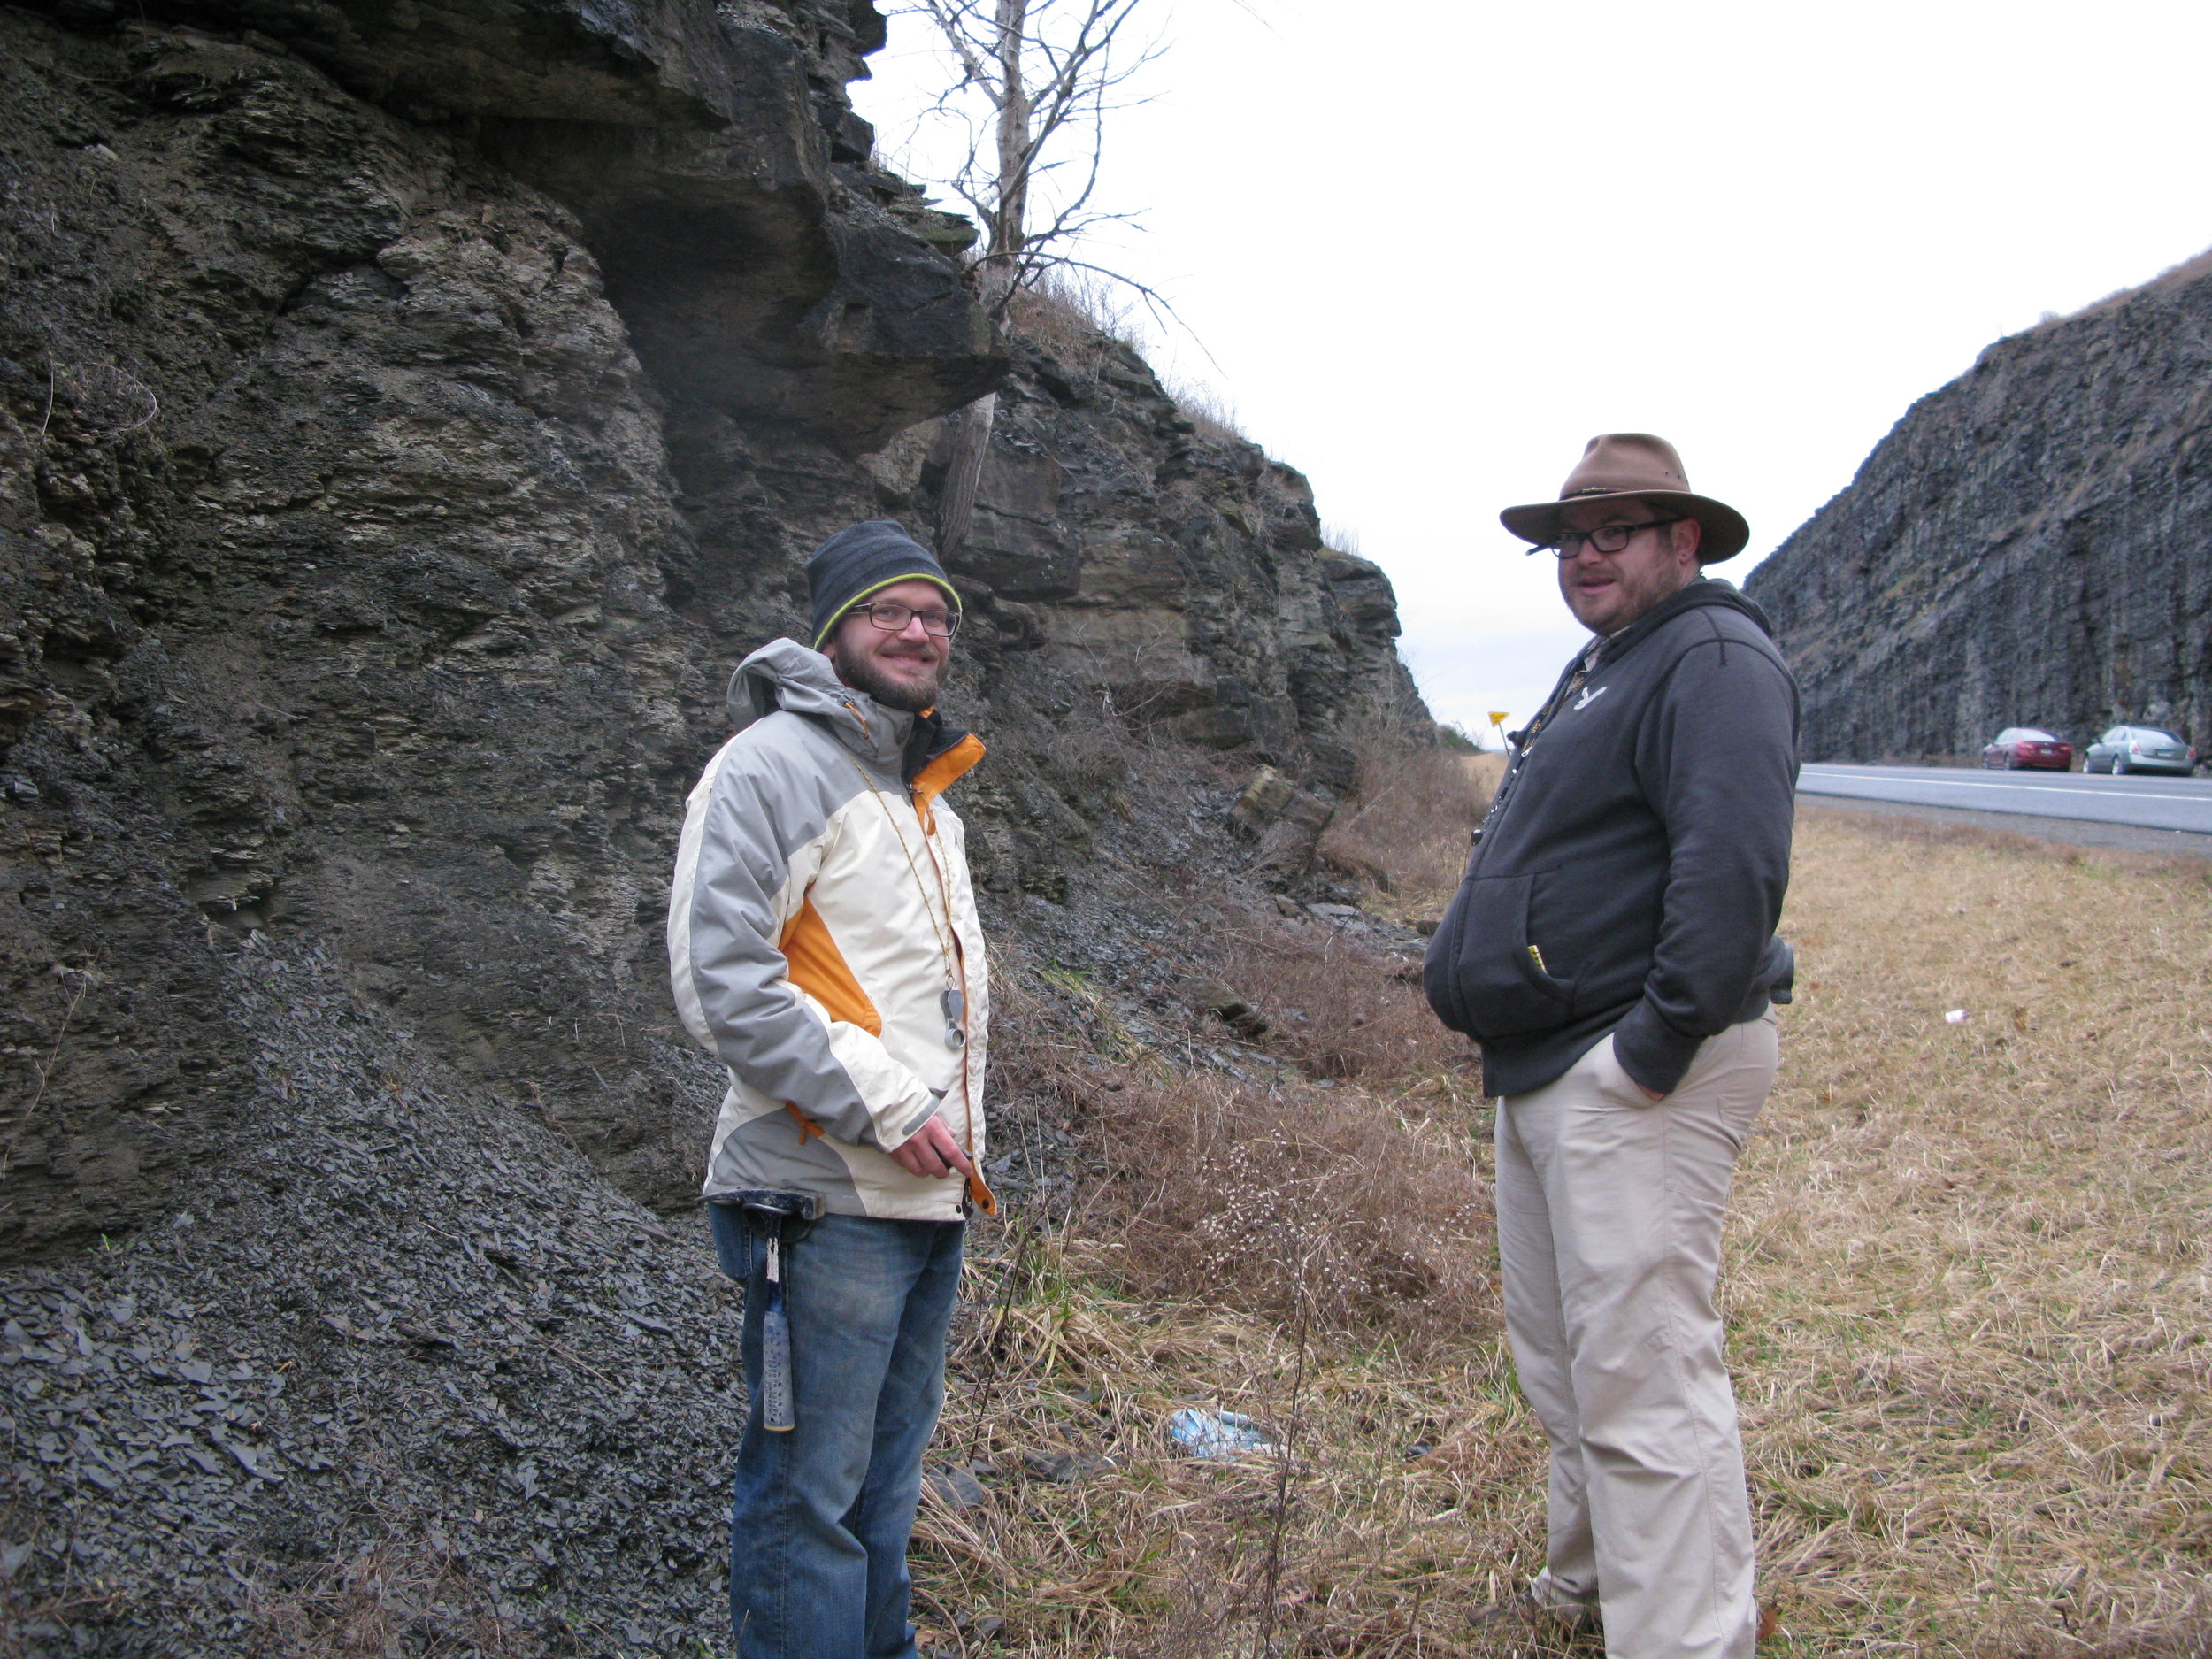 Figure 2. Photo of my advisor Dr. Andrew Bush (left) and myself (right) at an Upper Devonian outcrop near Tioga, PA. The shale is the Pipe Creek Formation, approximately the Lower Kellwasser extinction horizon